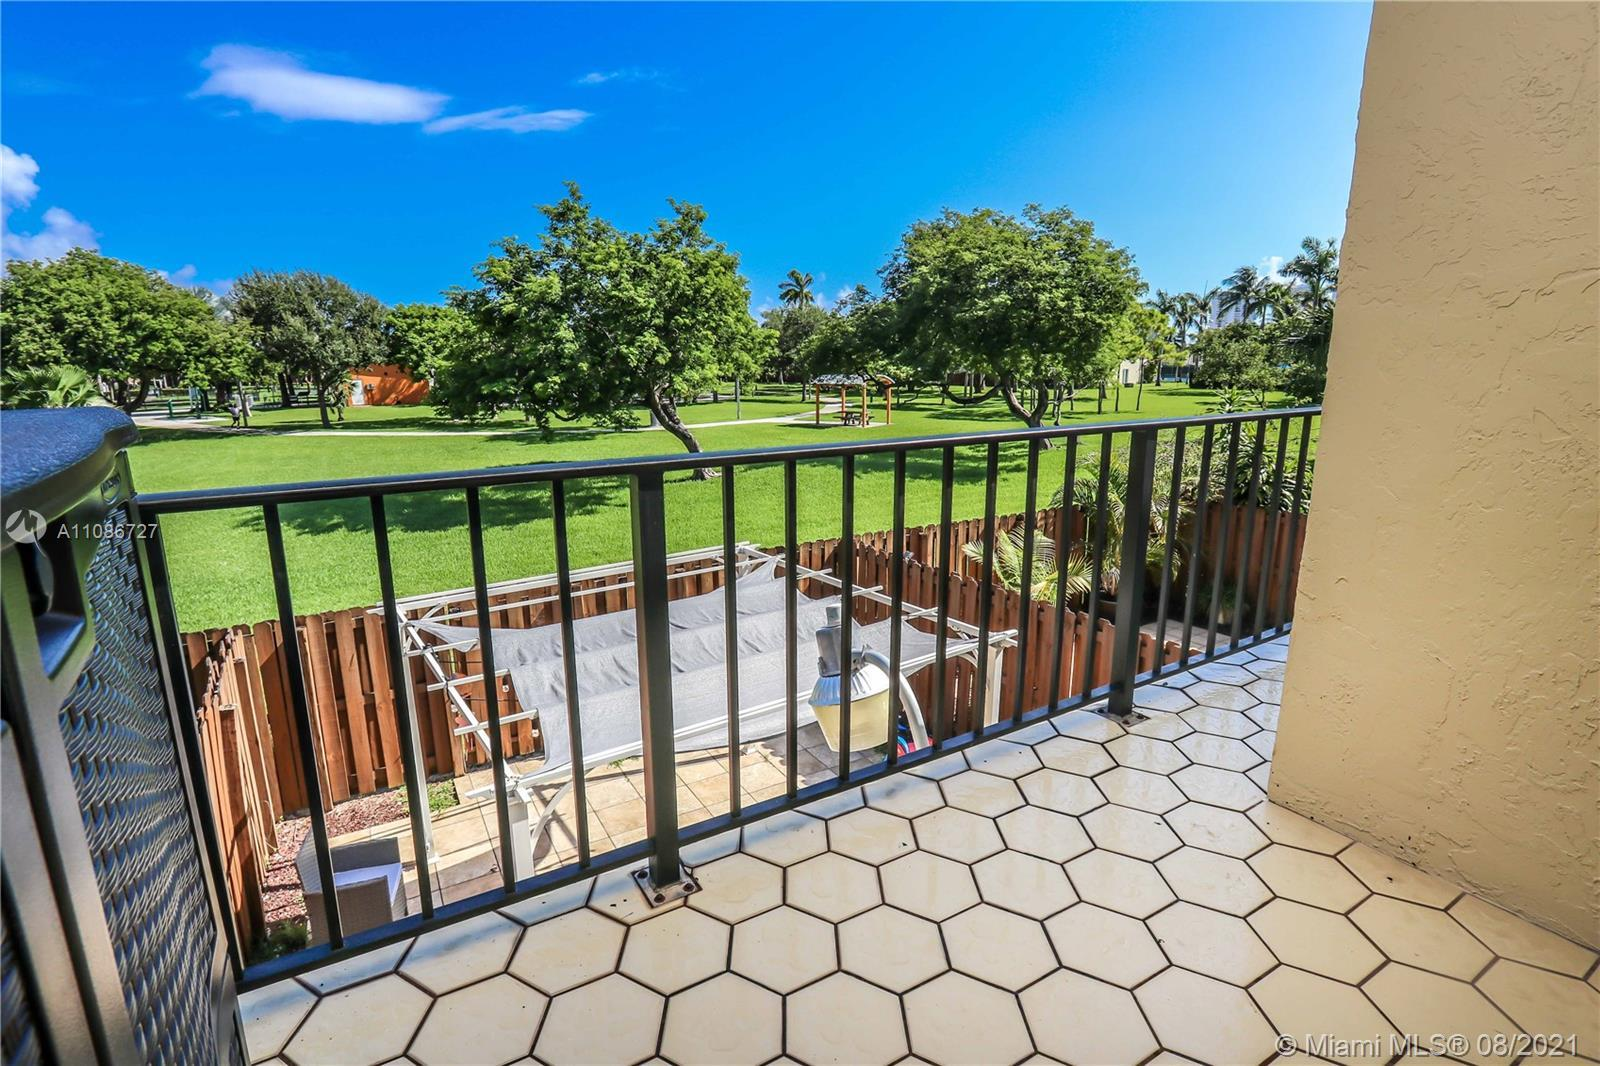 UNIQUE LOCATION 2BD / 2.5 BA PLUS DEN, TWO STORY TOWNHOME WITH PATIO GATE OPENING TO THE 7 ACRE BEAU